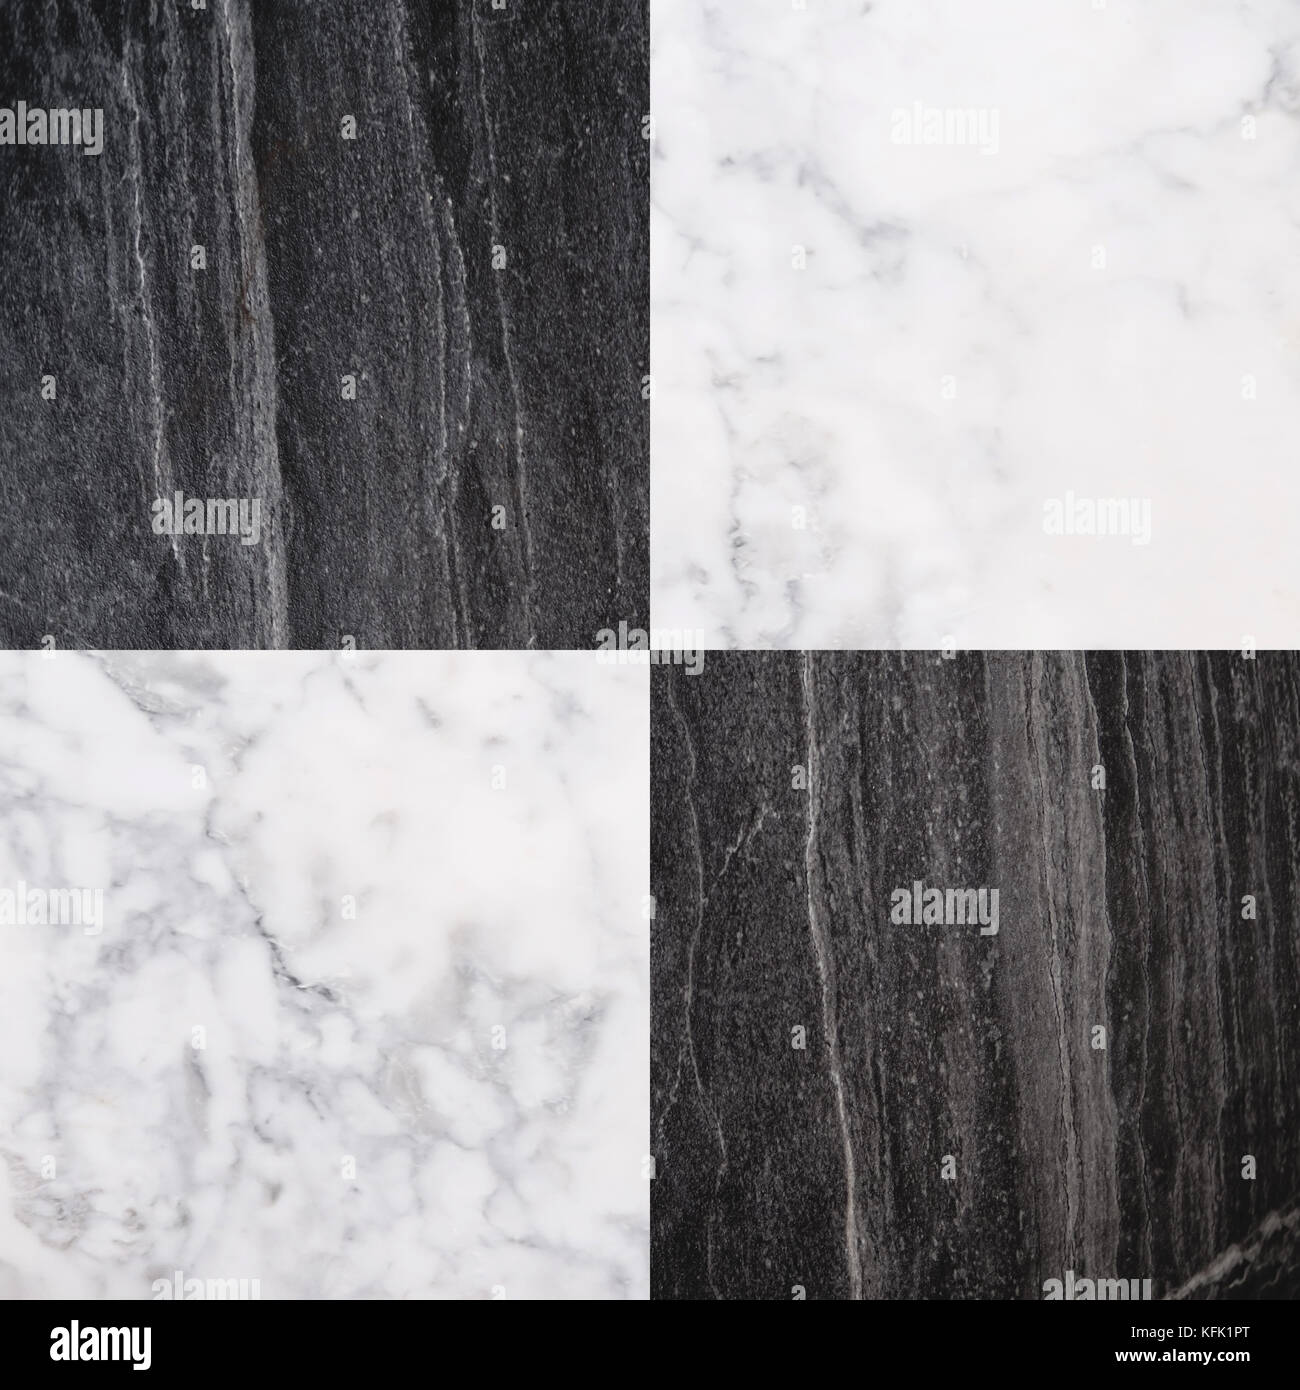 Black And White Marble Stone Tile Seamless Stone Texture Background Stock Photo Alamy